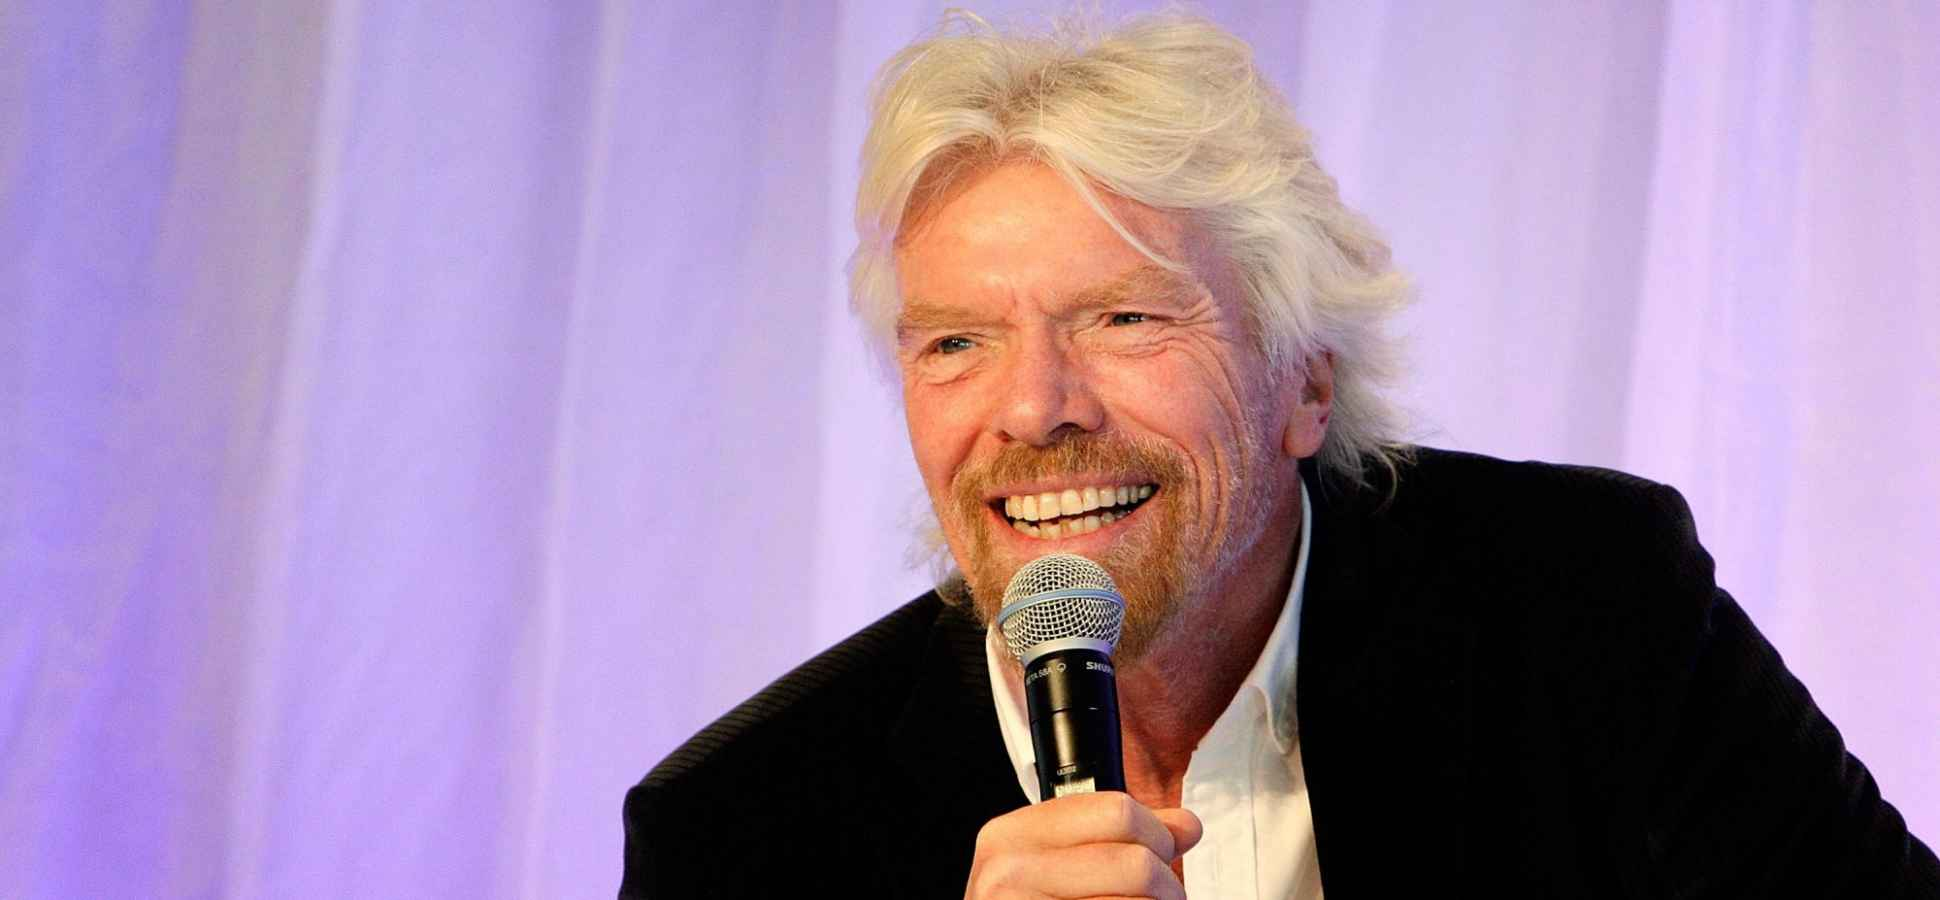 How Does Virgin CEO Richard Branson Get So Much Done? He Uses This 1 Simple Method